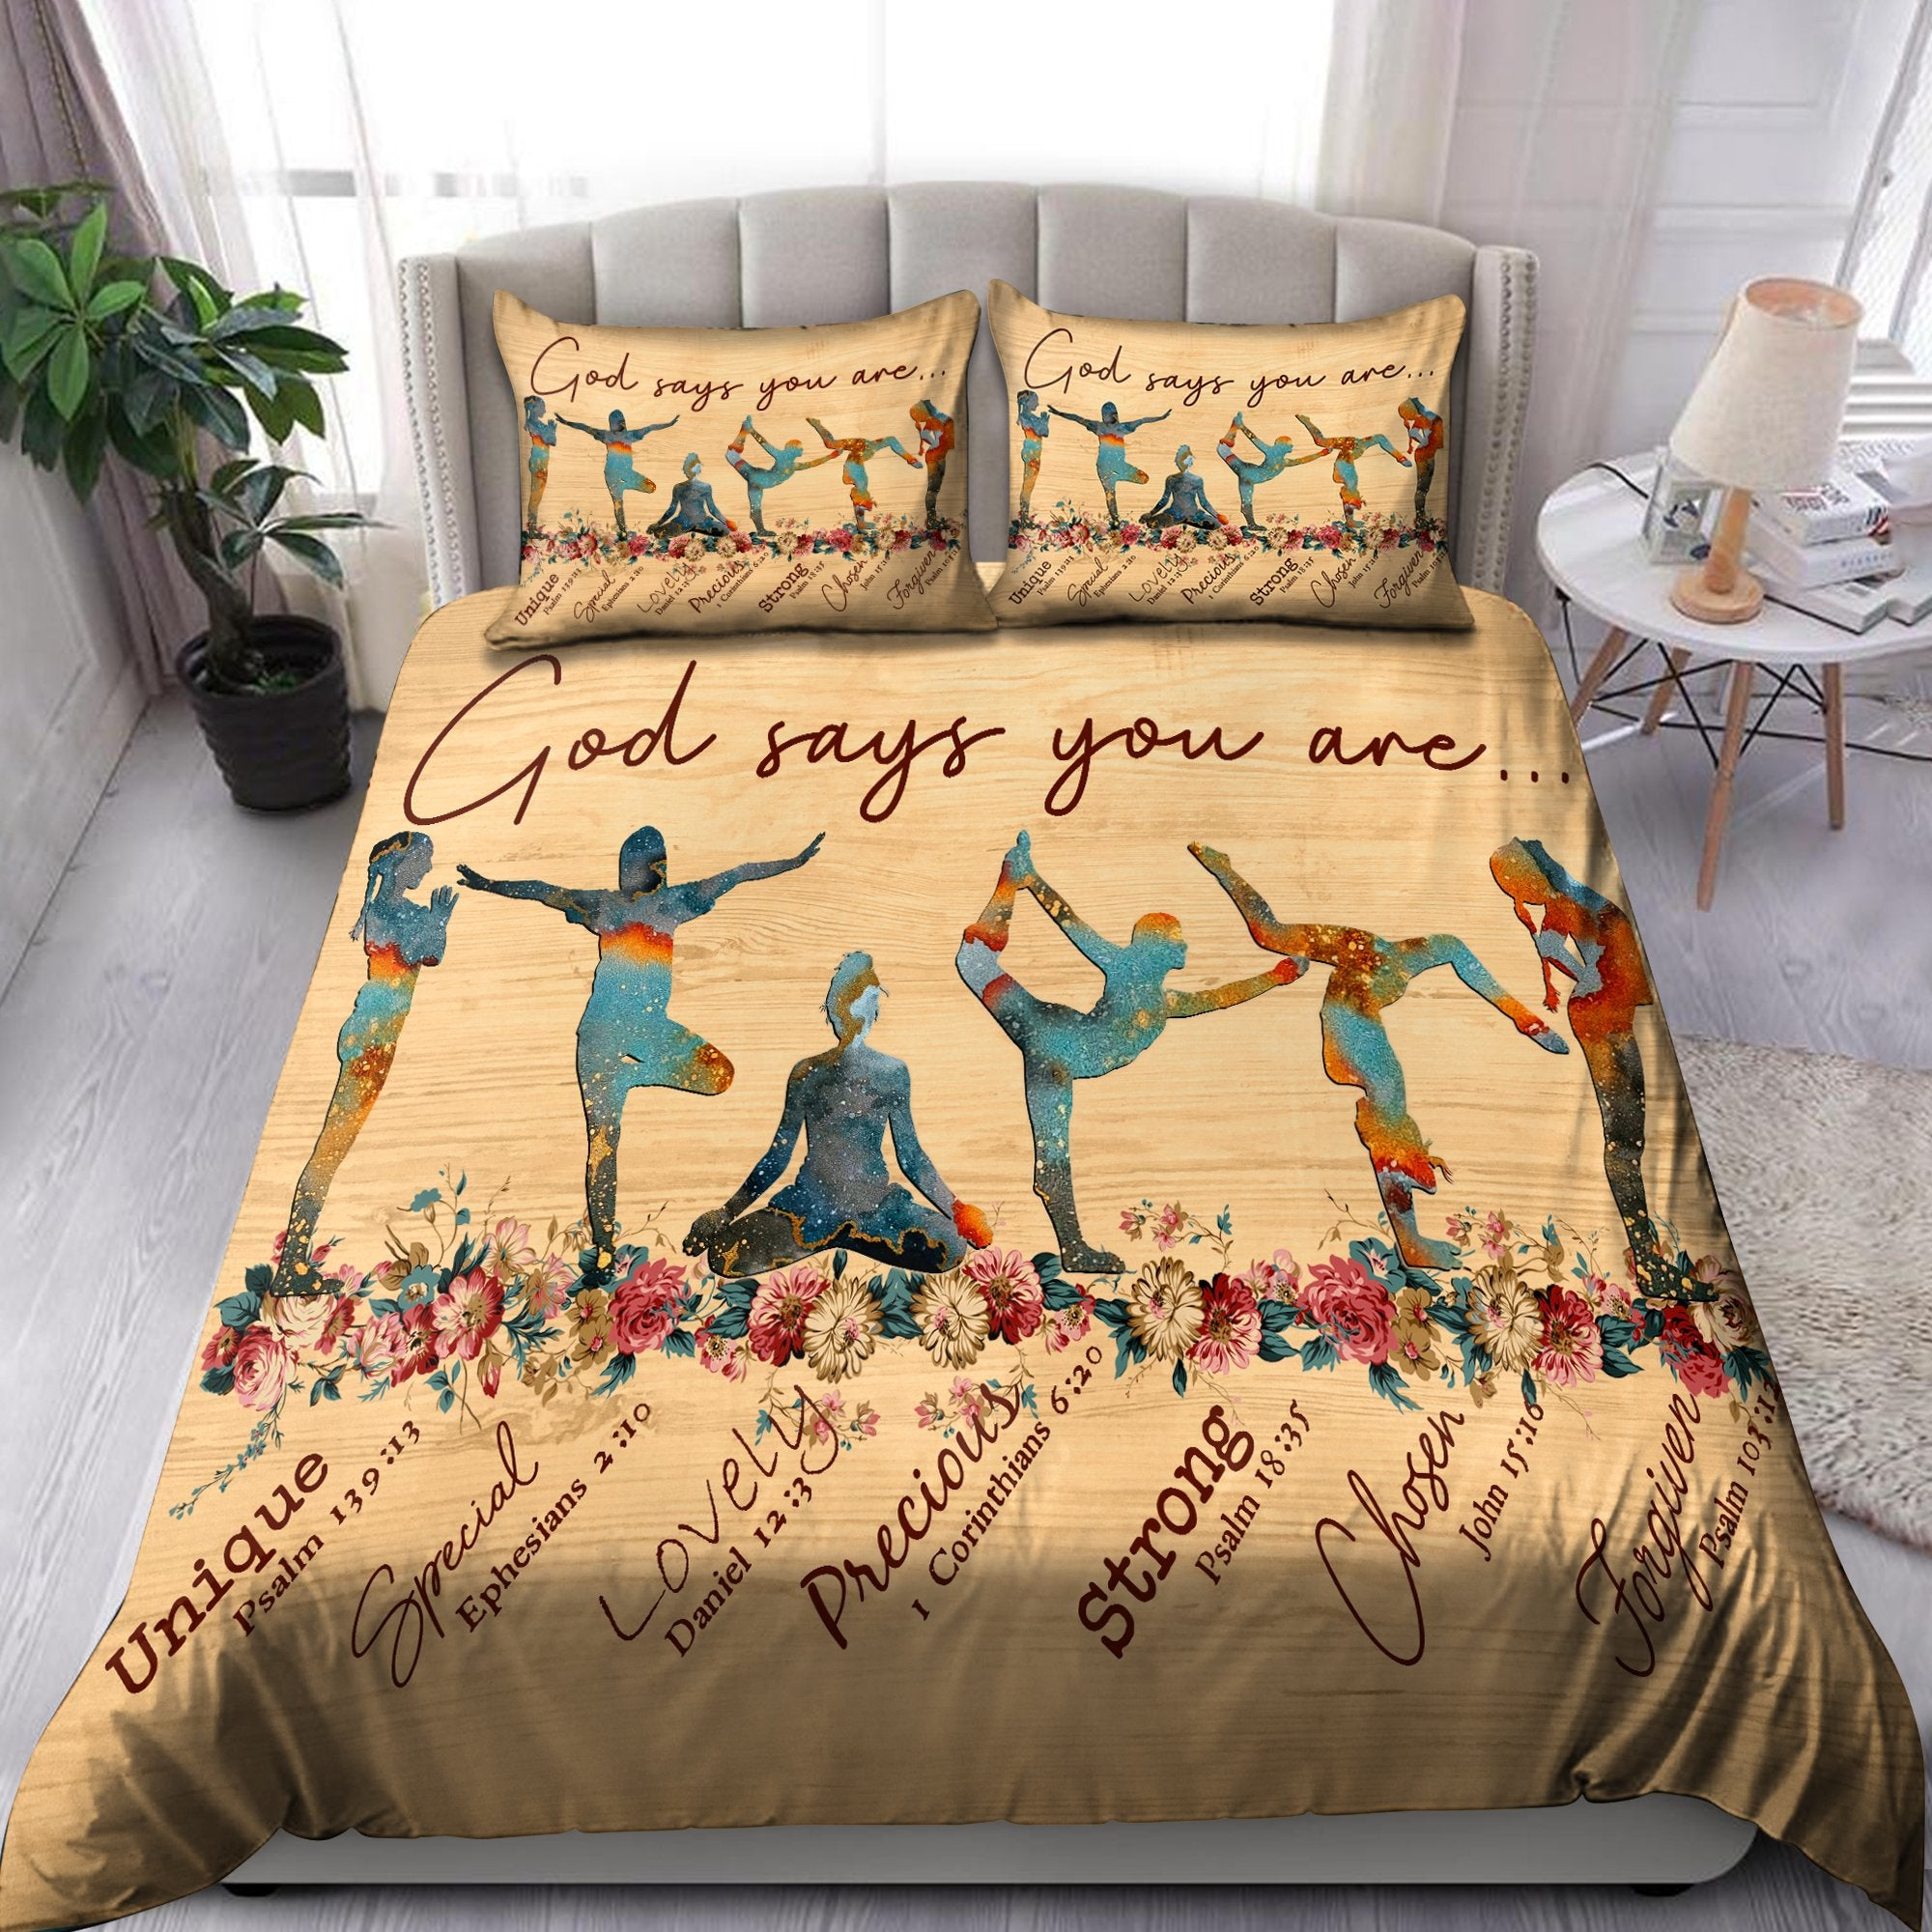 Yoga-God Says You Are Bedding Set Pi20072001-Quilt-TA-Twin-Vibe Cosy™